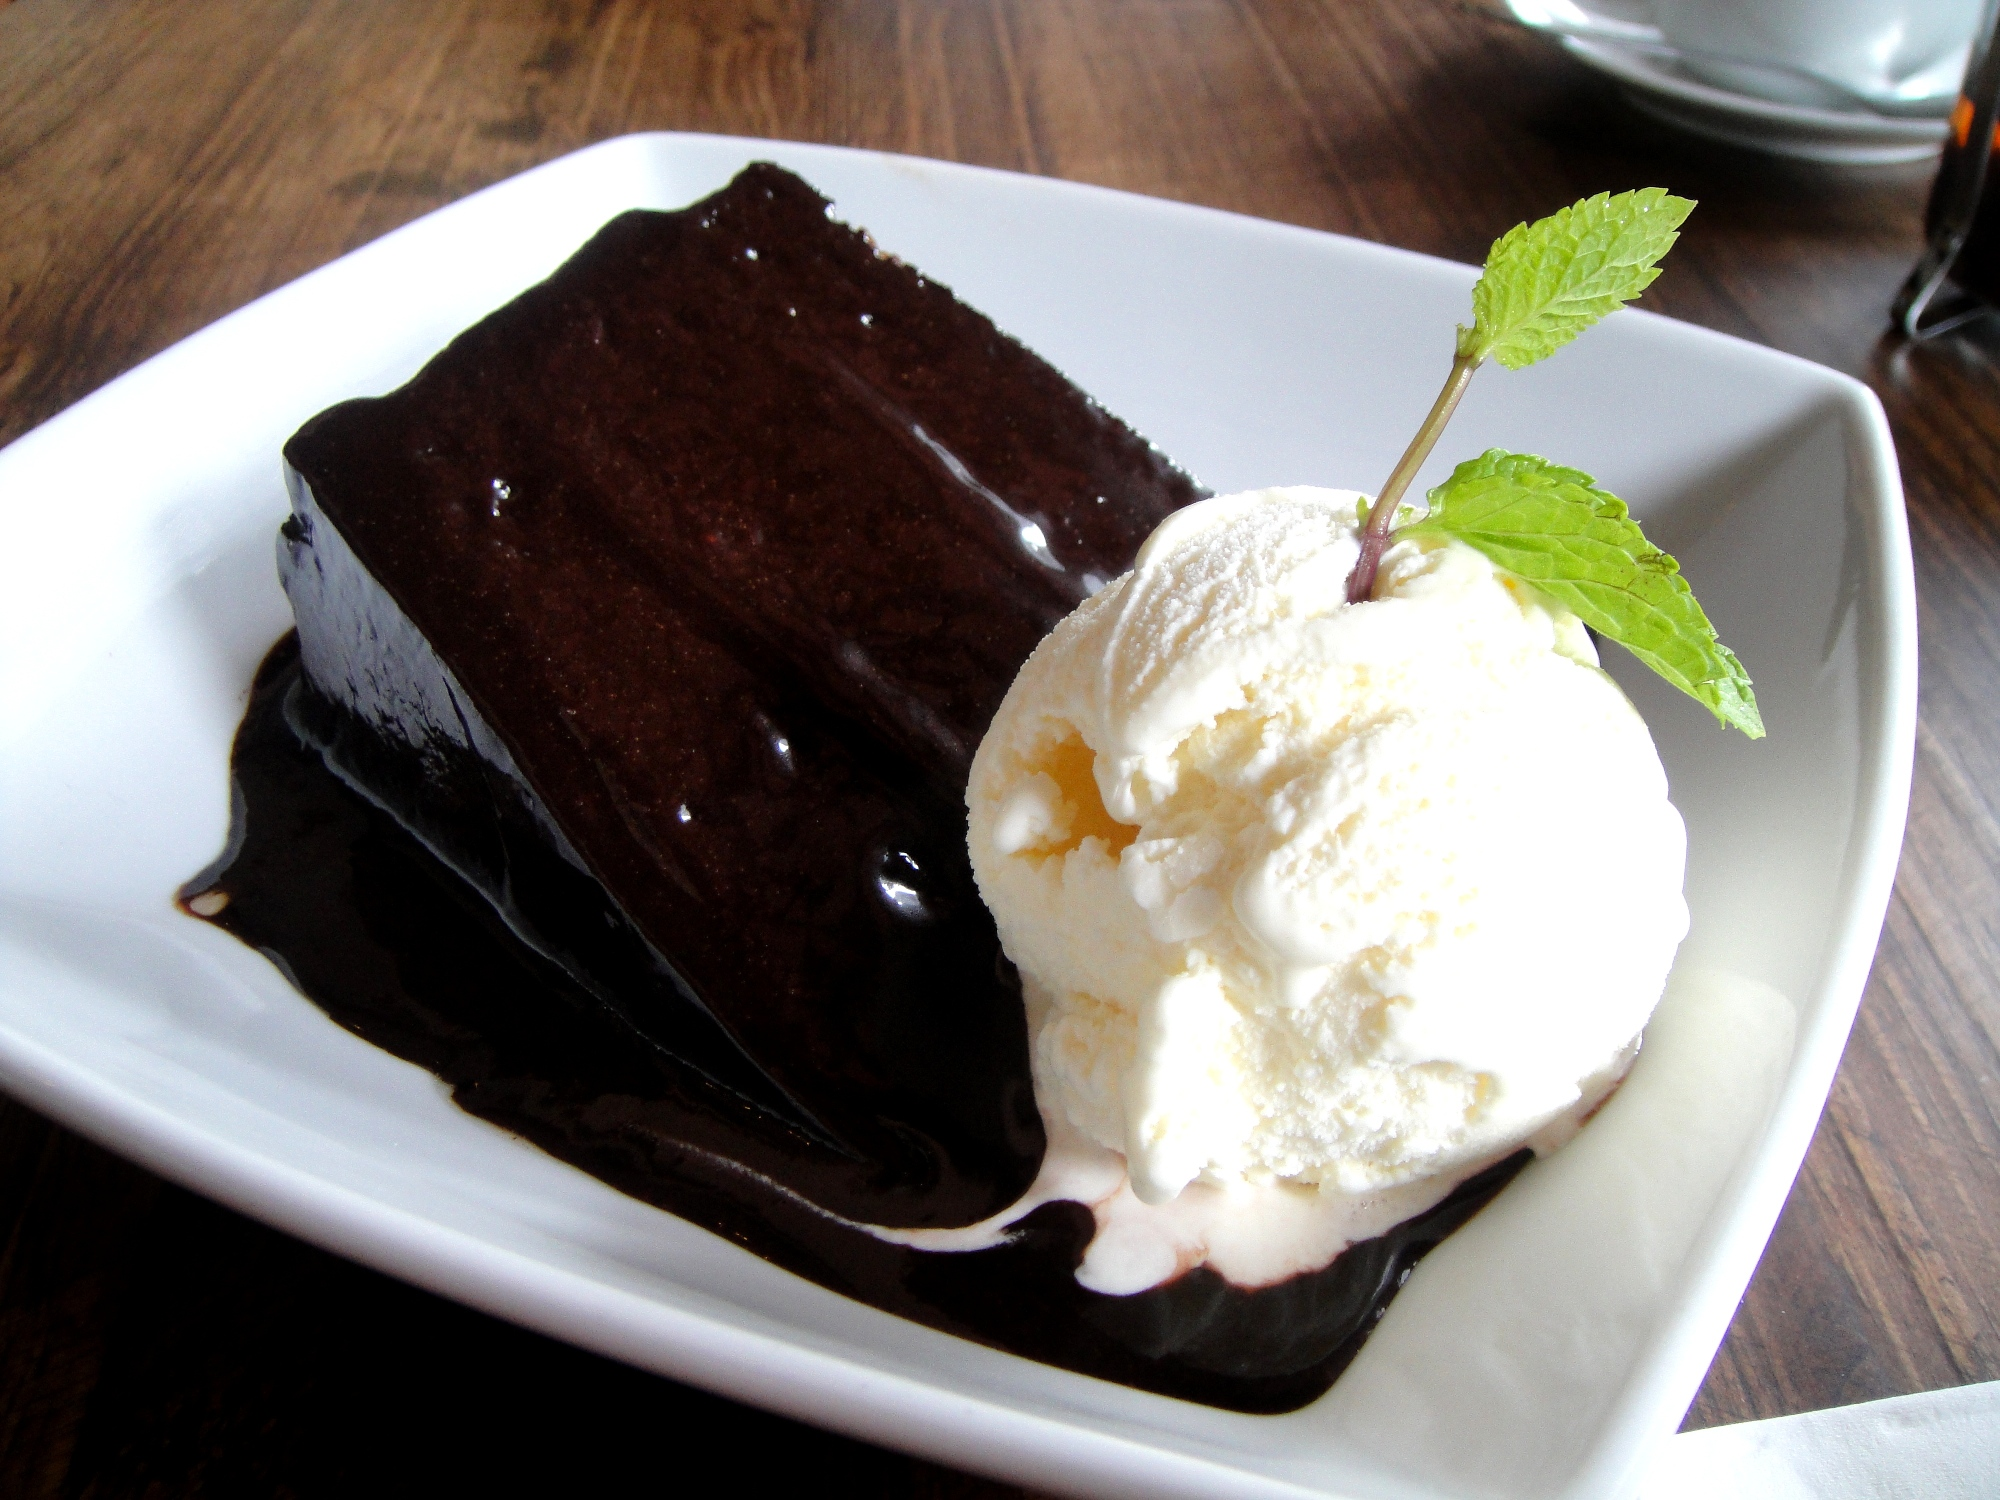 chocolate-cake-with-vanilla-ice-cream-wallpaper-1